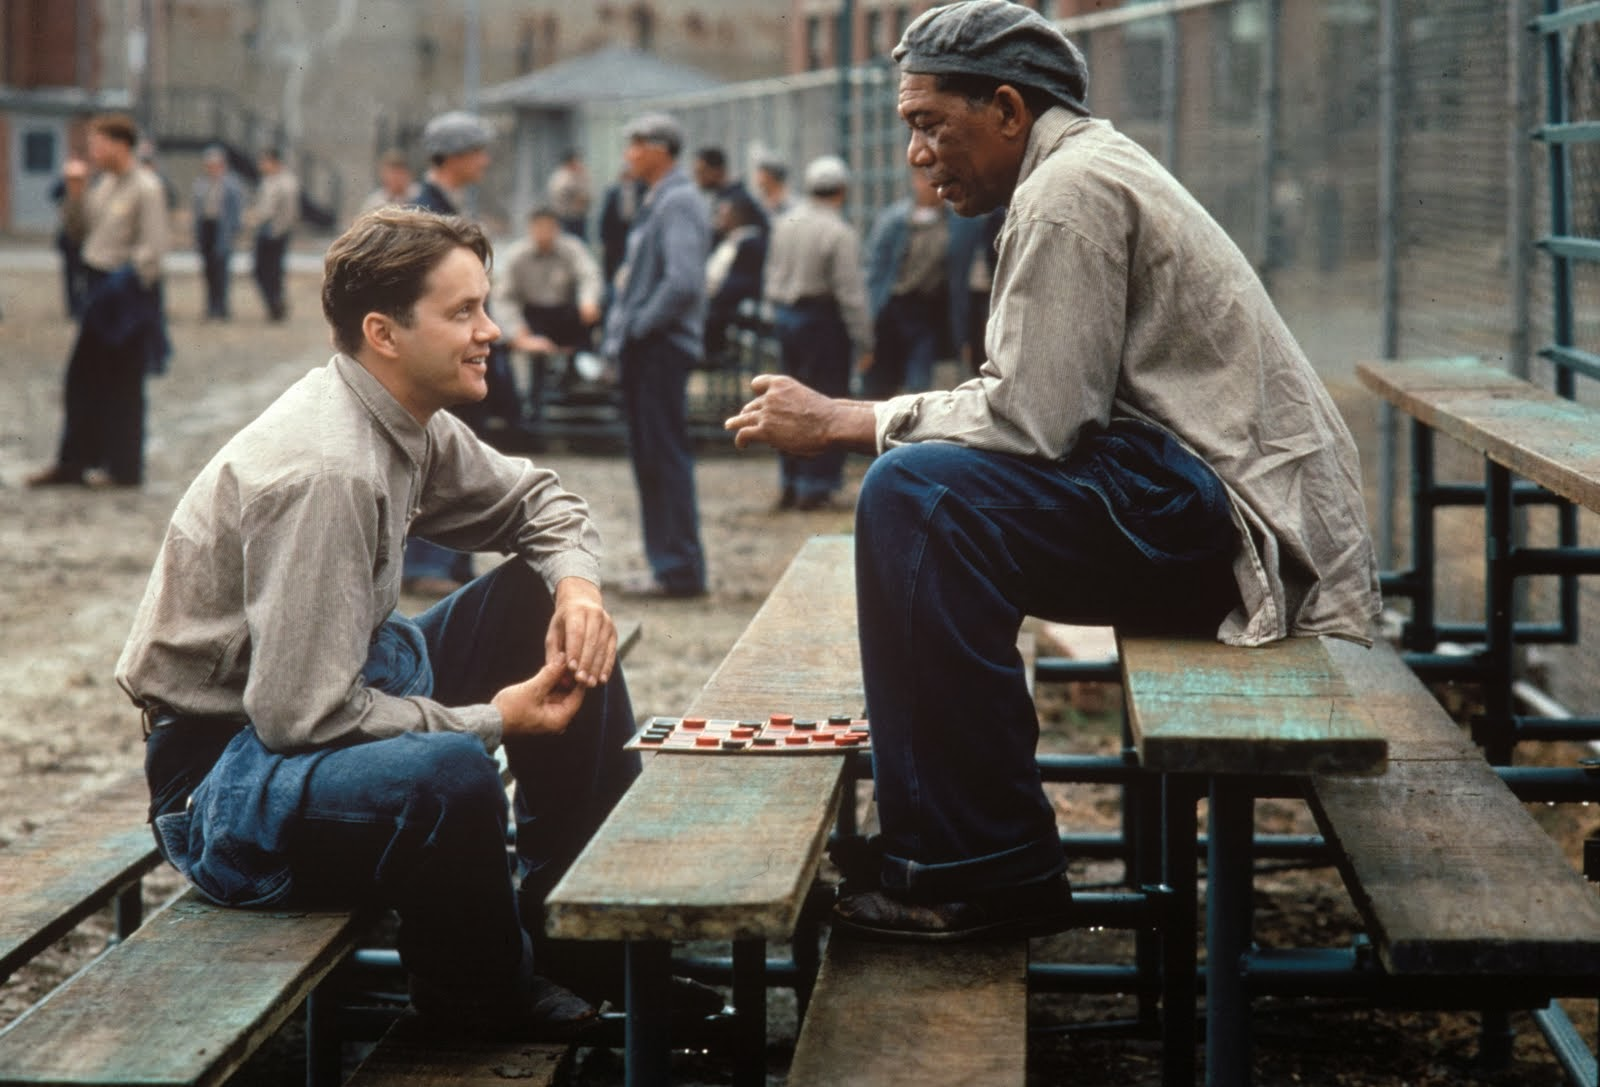 shawshank redemption setting essay Free shawshank redemption papers, essays, and research papers  the setting  can give clues to what is going to happen next in the film [tags: papers.